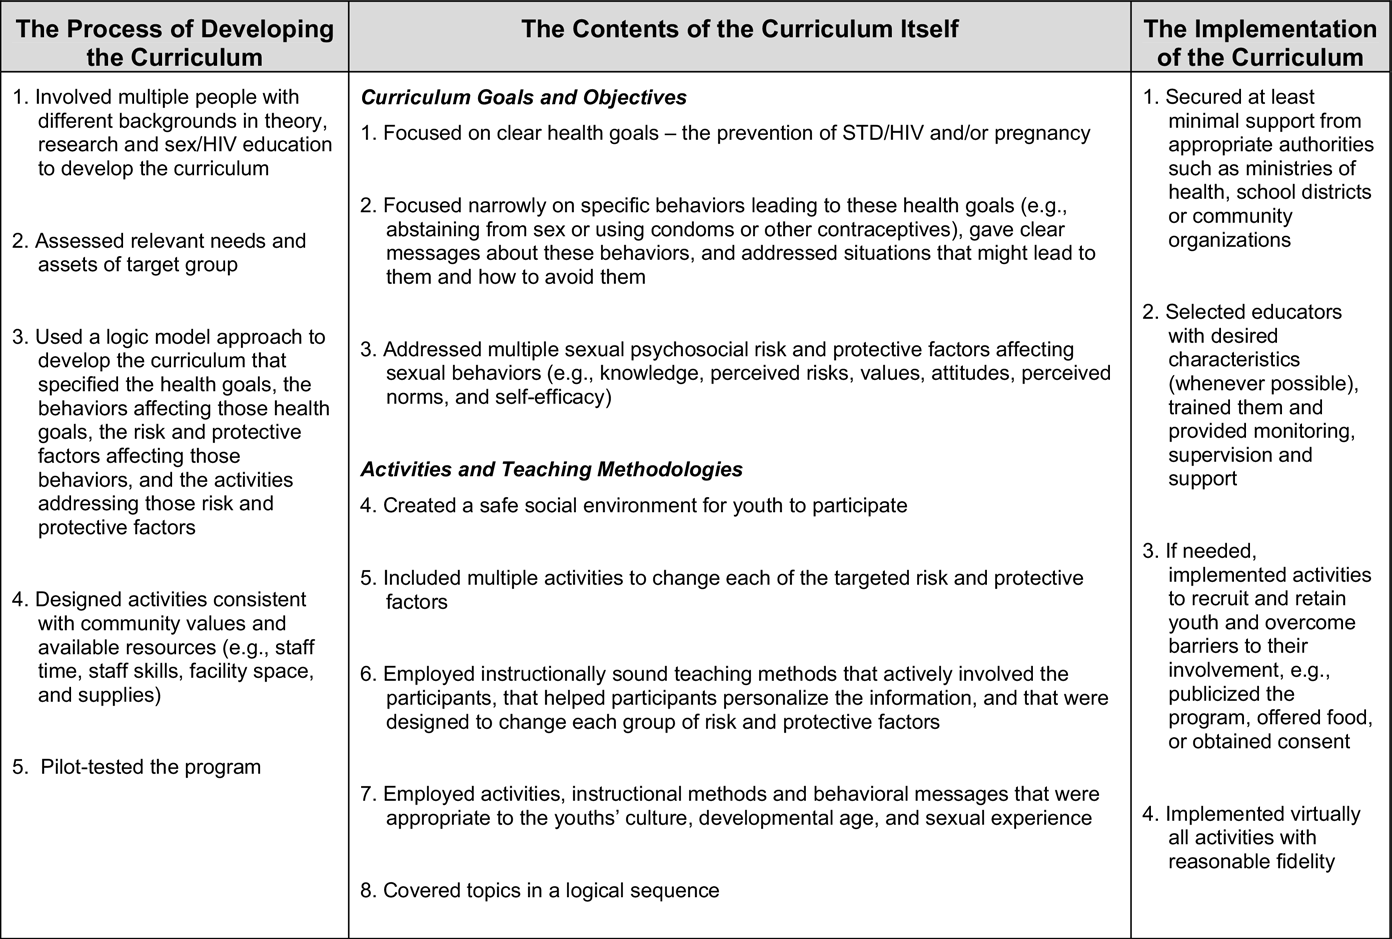 D.B. Kirby et al. / Journal of Adolescent Health 40 (2007) 206 217 213 Figure 1. Characteristics of effective curriculum-based programs.